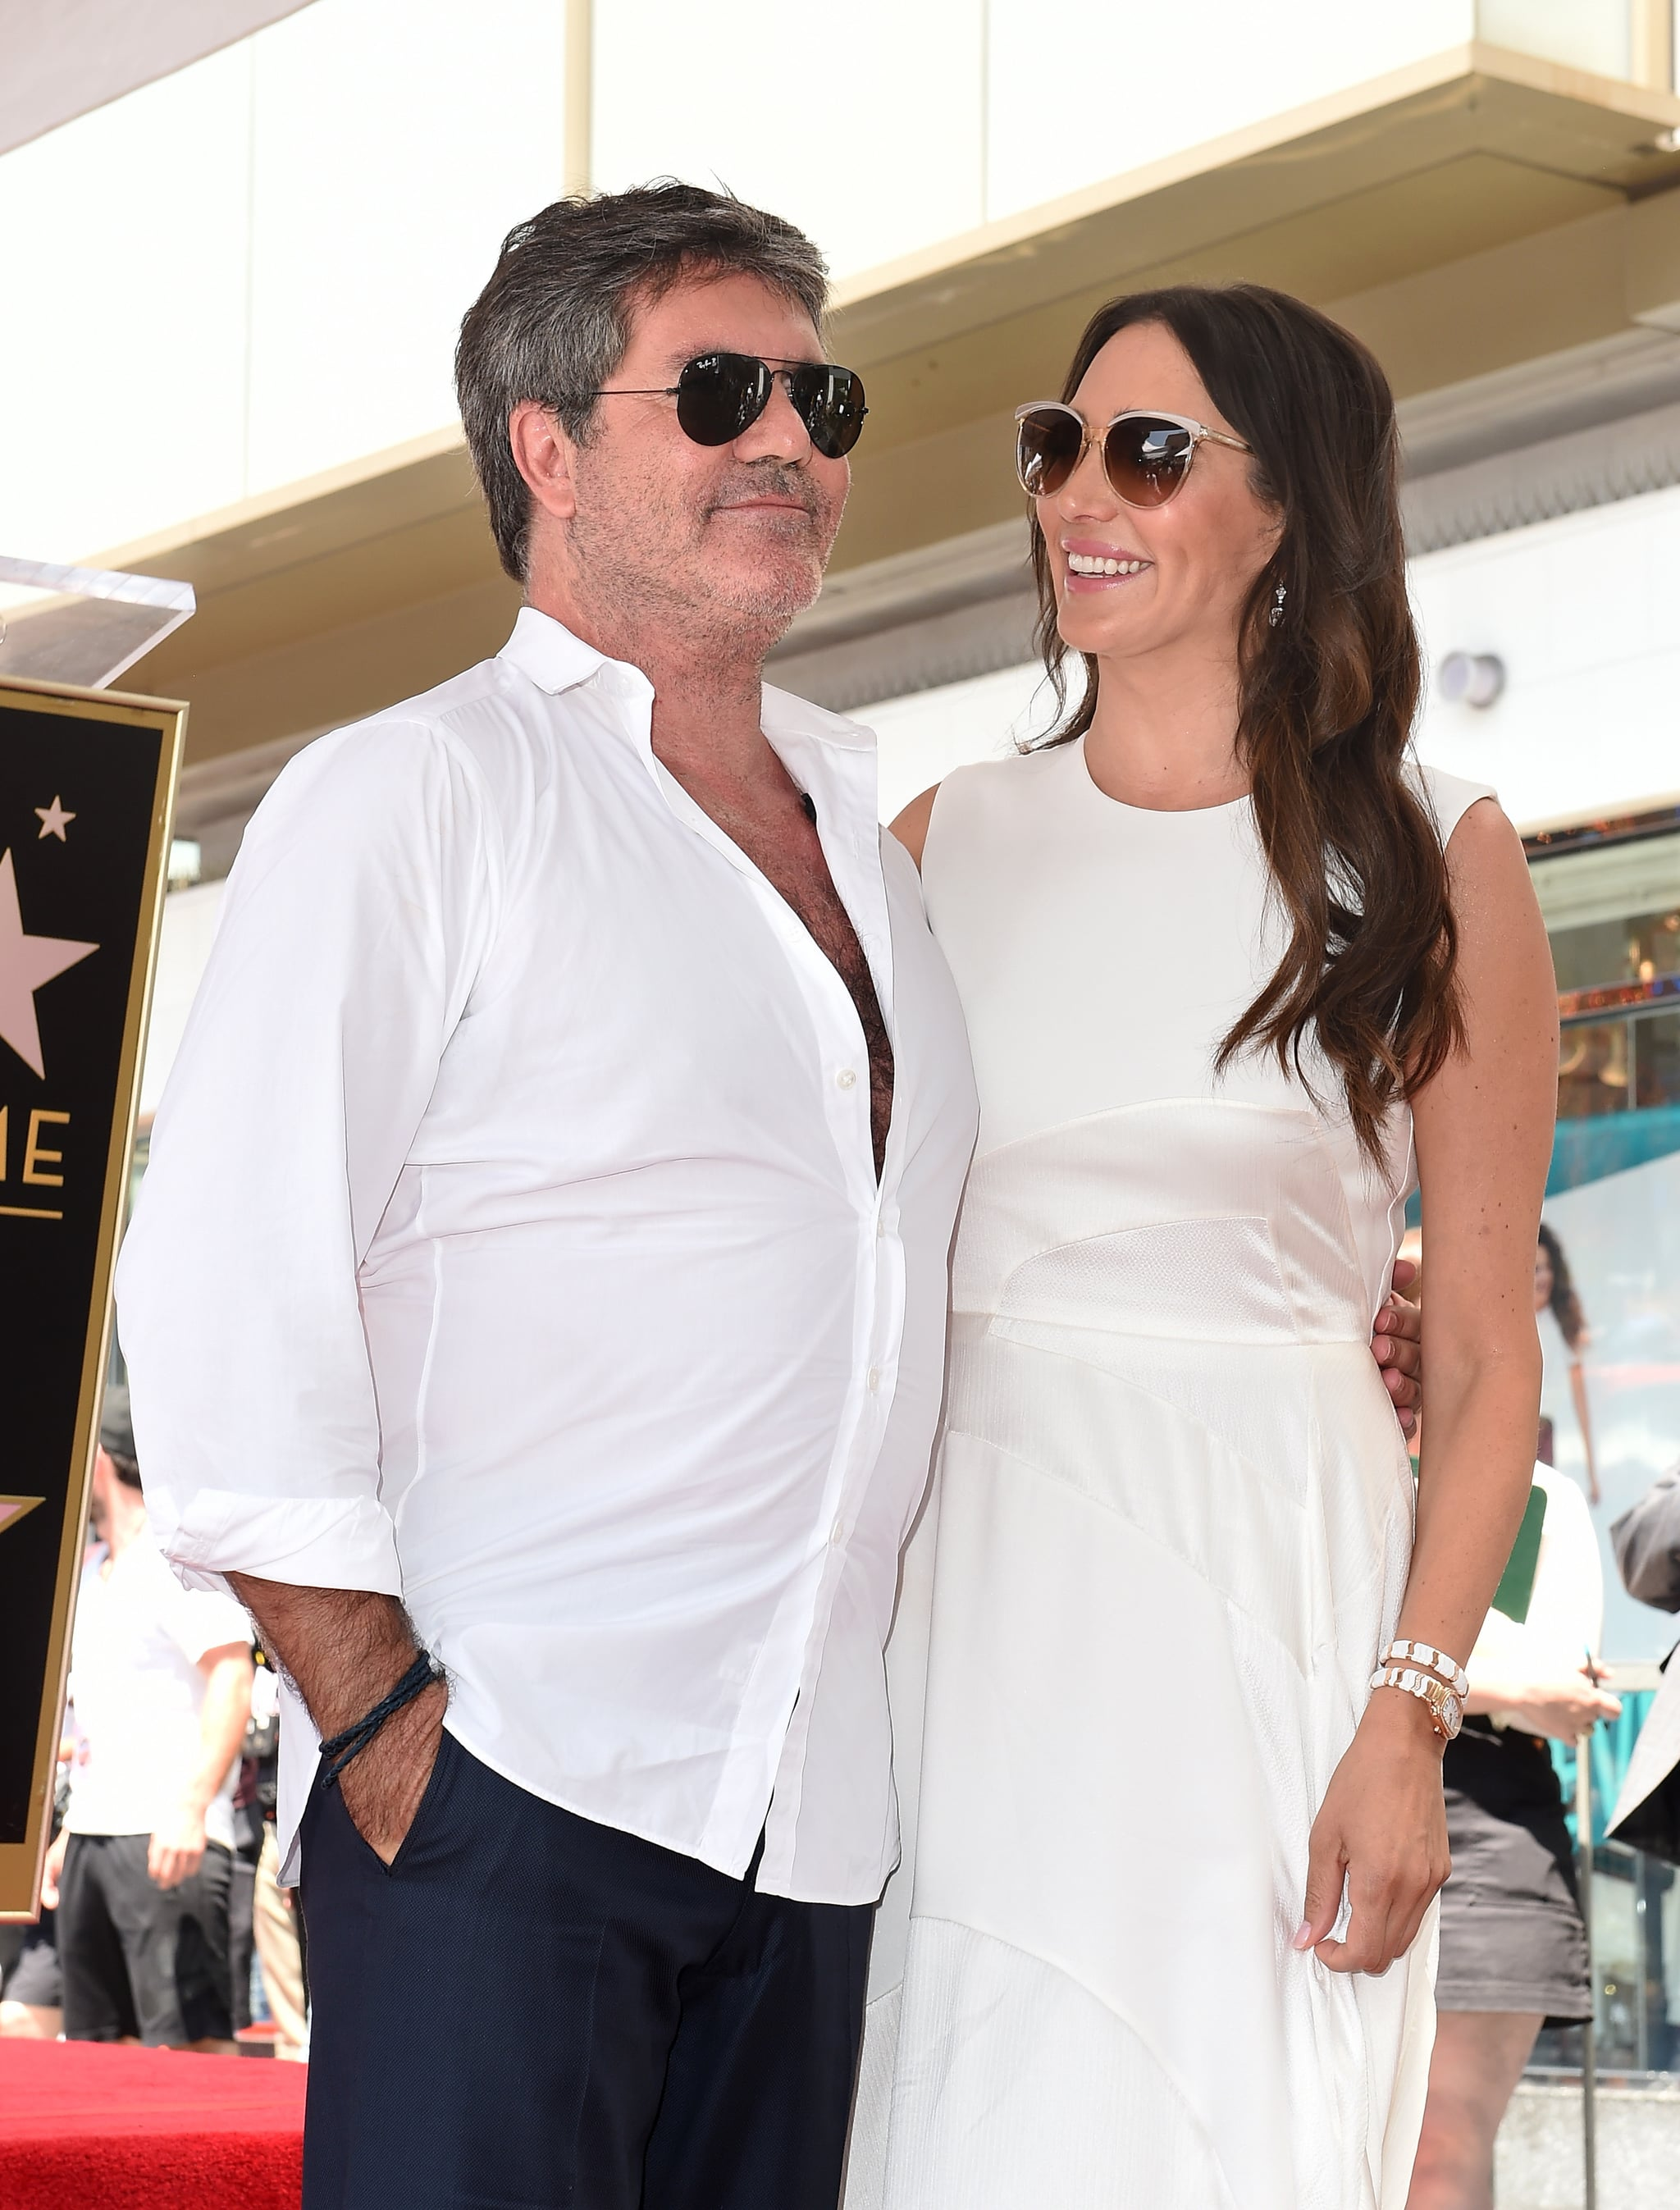 Simon Cowell And His Wife Lauren Silverman Kelly Clarkson And Many More Stars Support Simon Cowell At His Hollywood Star Ceremony Popsugar Celebrity Photo 25